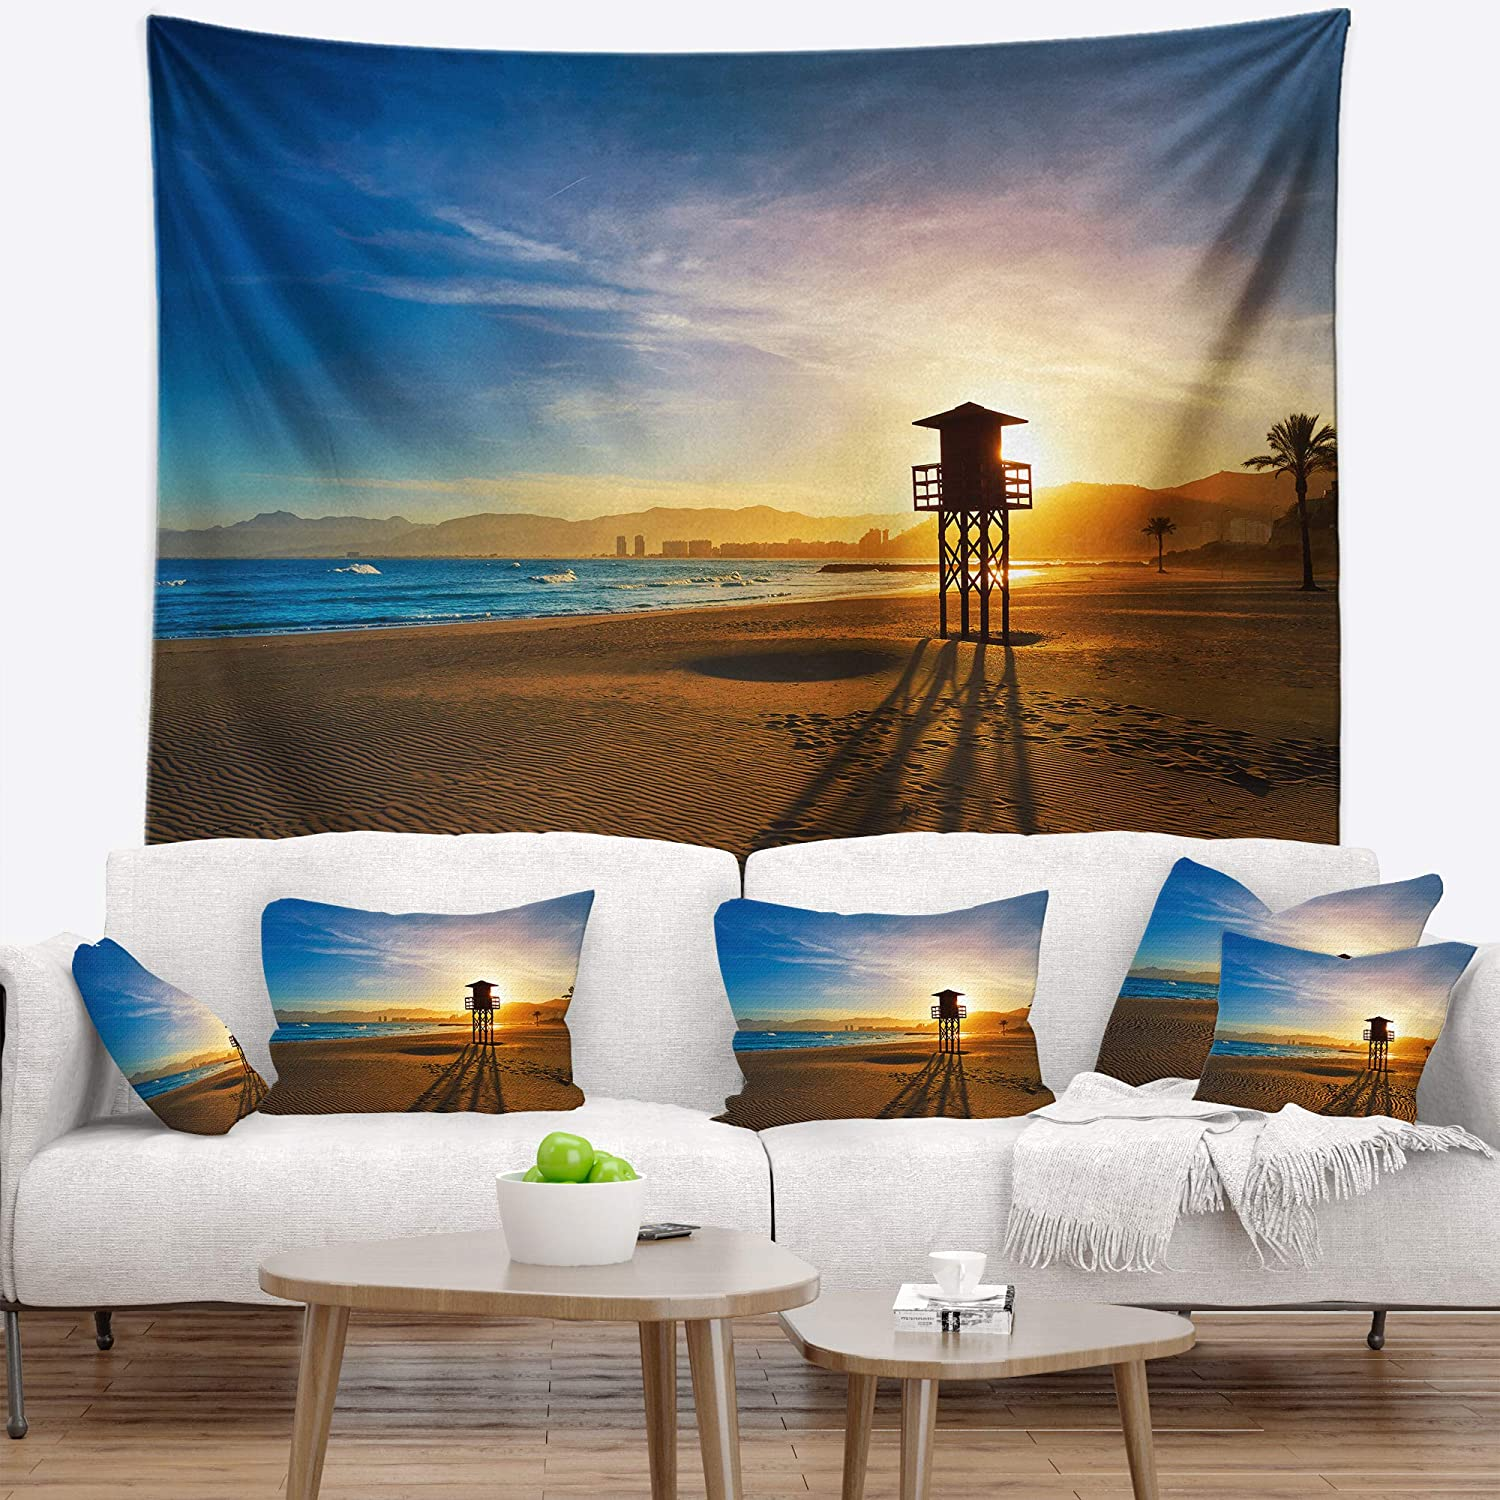 Designart TAP10464-80-68  Colorful Sunset in Valencia Modern Beach Blanket D/écor Art for Home and Office Wall Tapestry x Large Created On Lightweight Polyester Fabric x 68 in 80 in